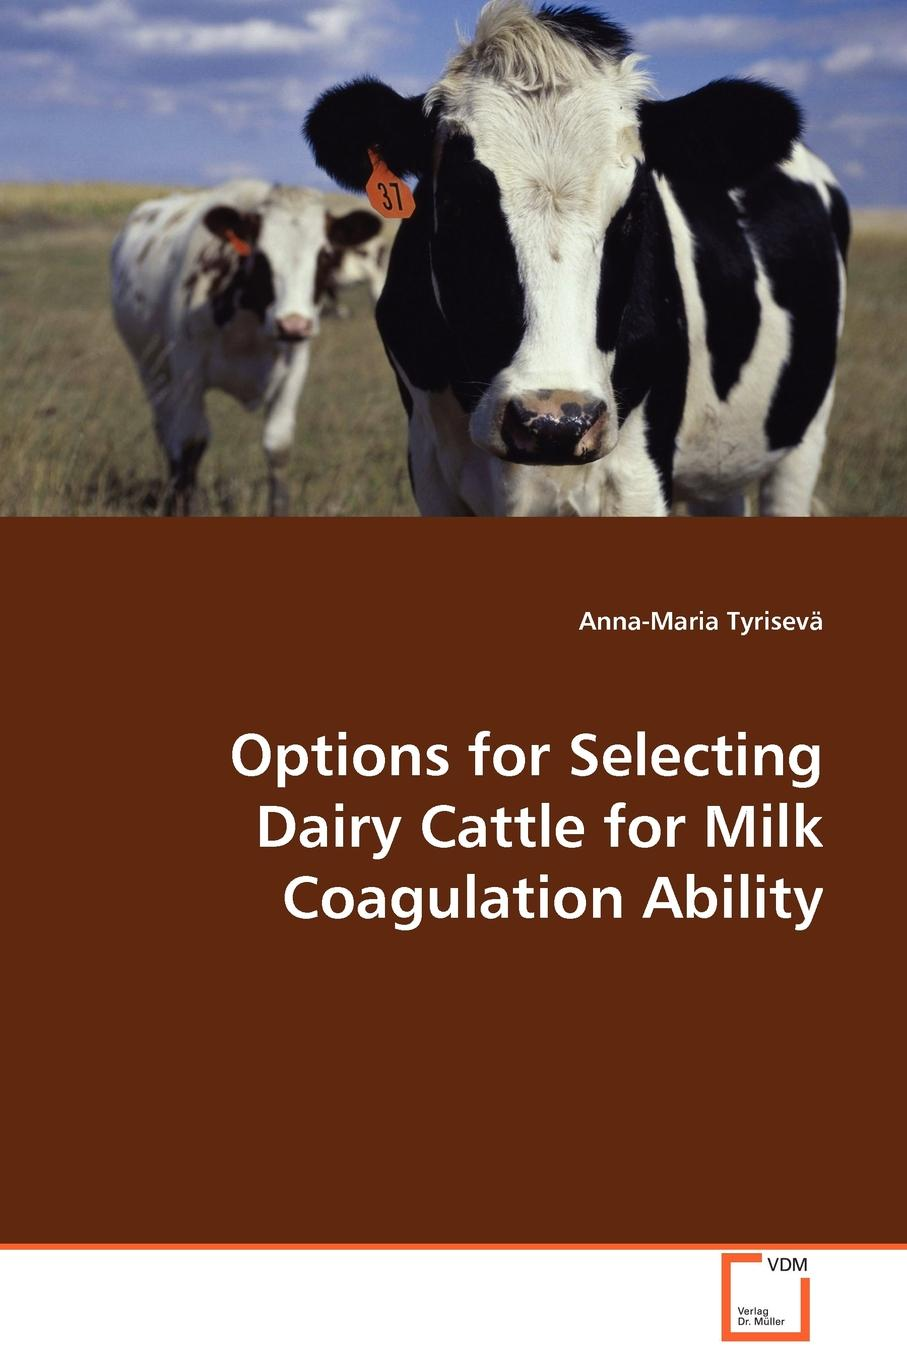 Anna-Maria Tyrisevä Options for Selecting Dairy Cattle for Milk Coagulation Ability raw milk quality